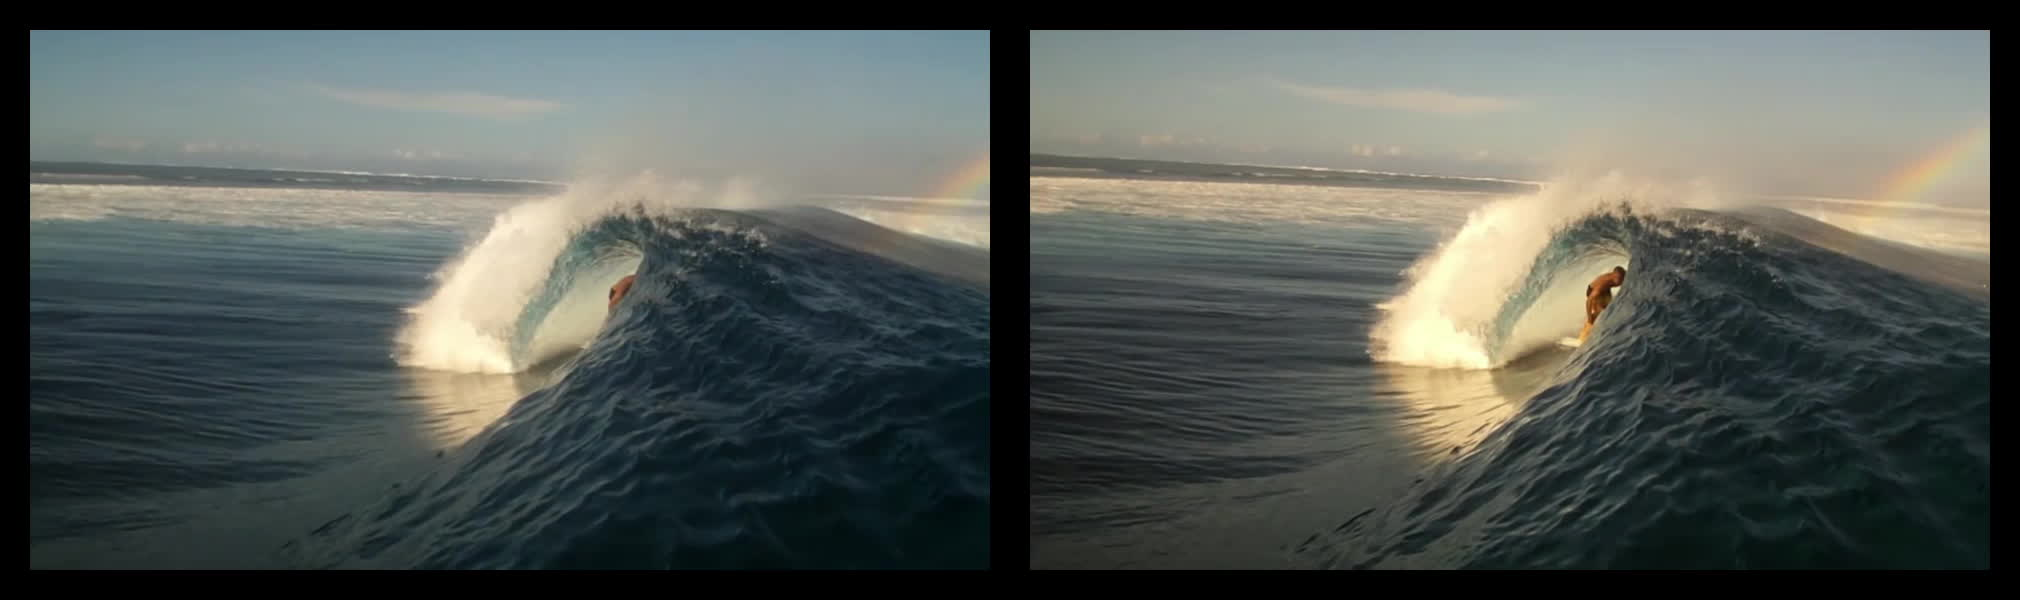 crossview, surfing, Surfing under a wave (Crossview Conversion) GIFs